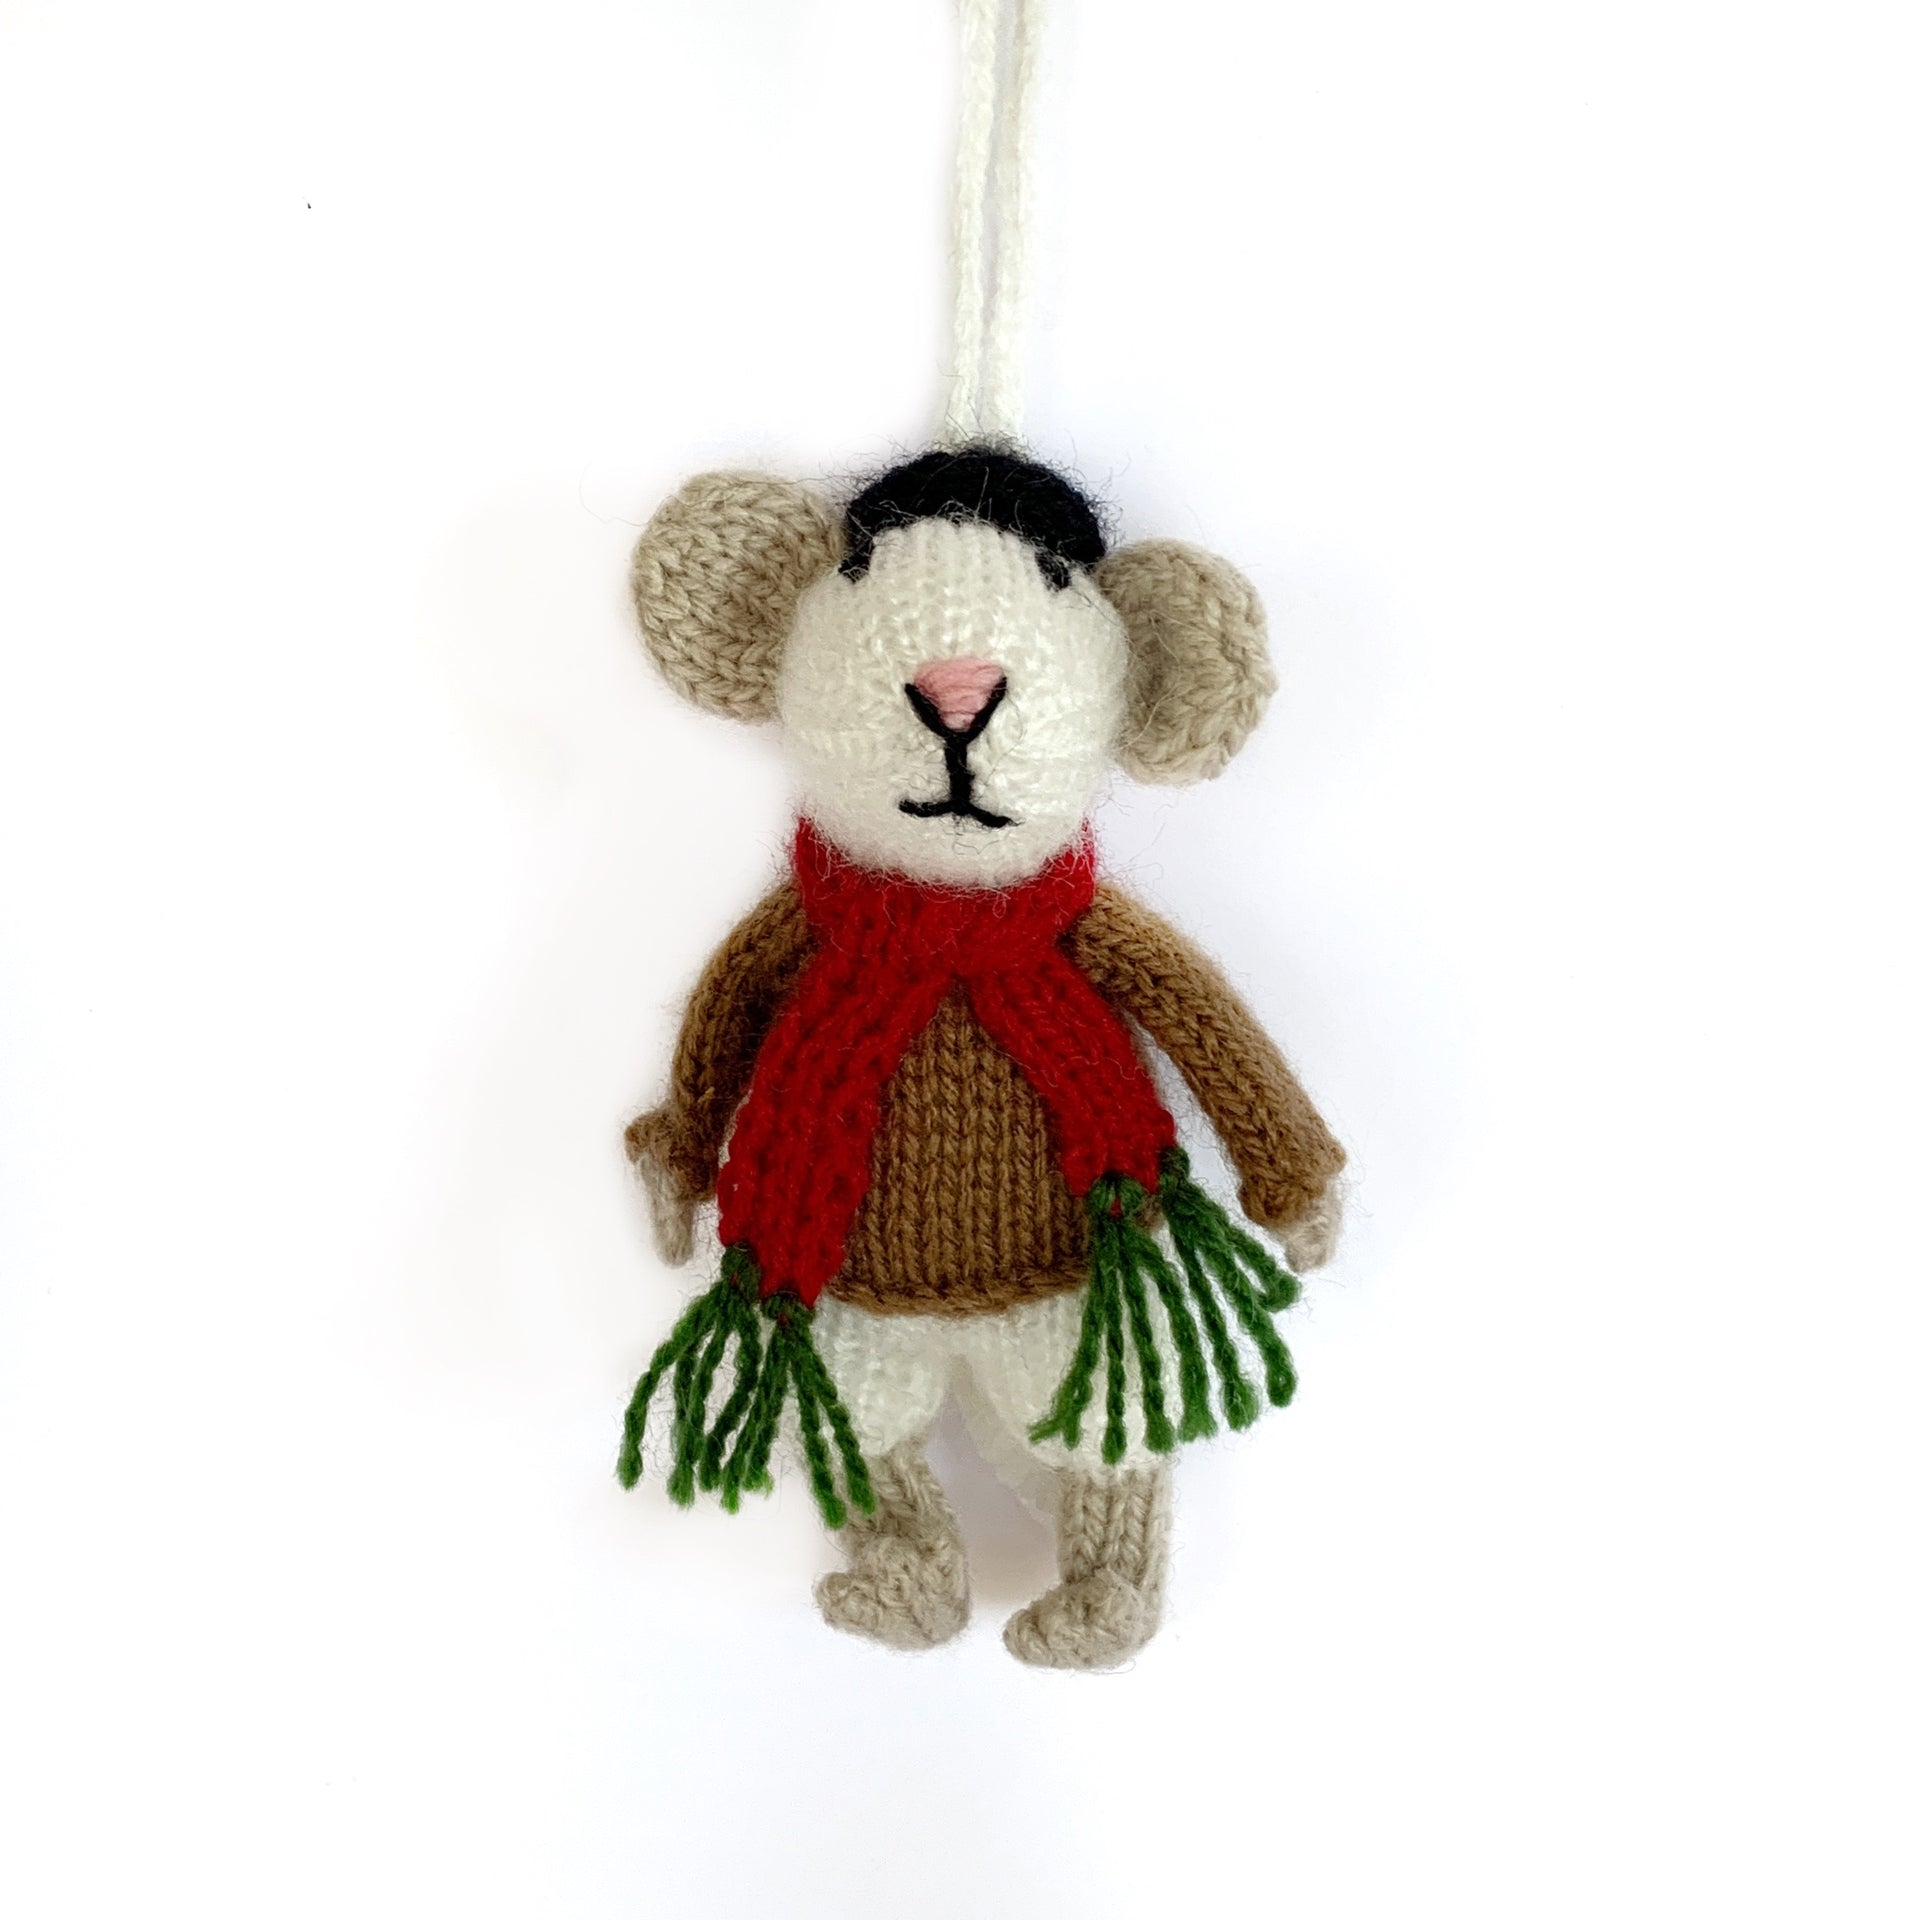 Mr. and Mrs. Mouse Ornaments, Knit Wool